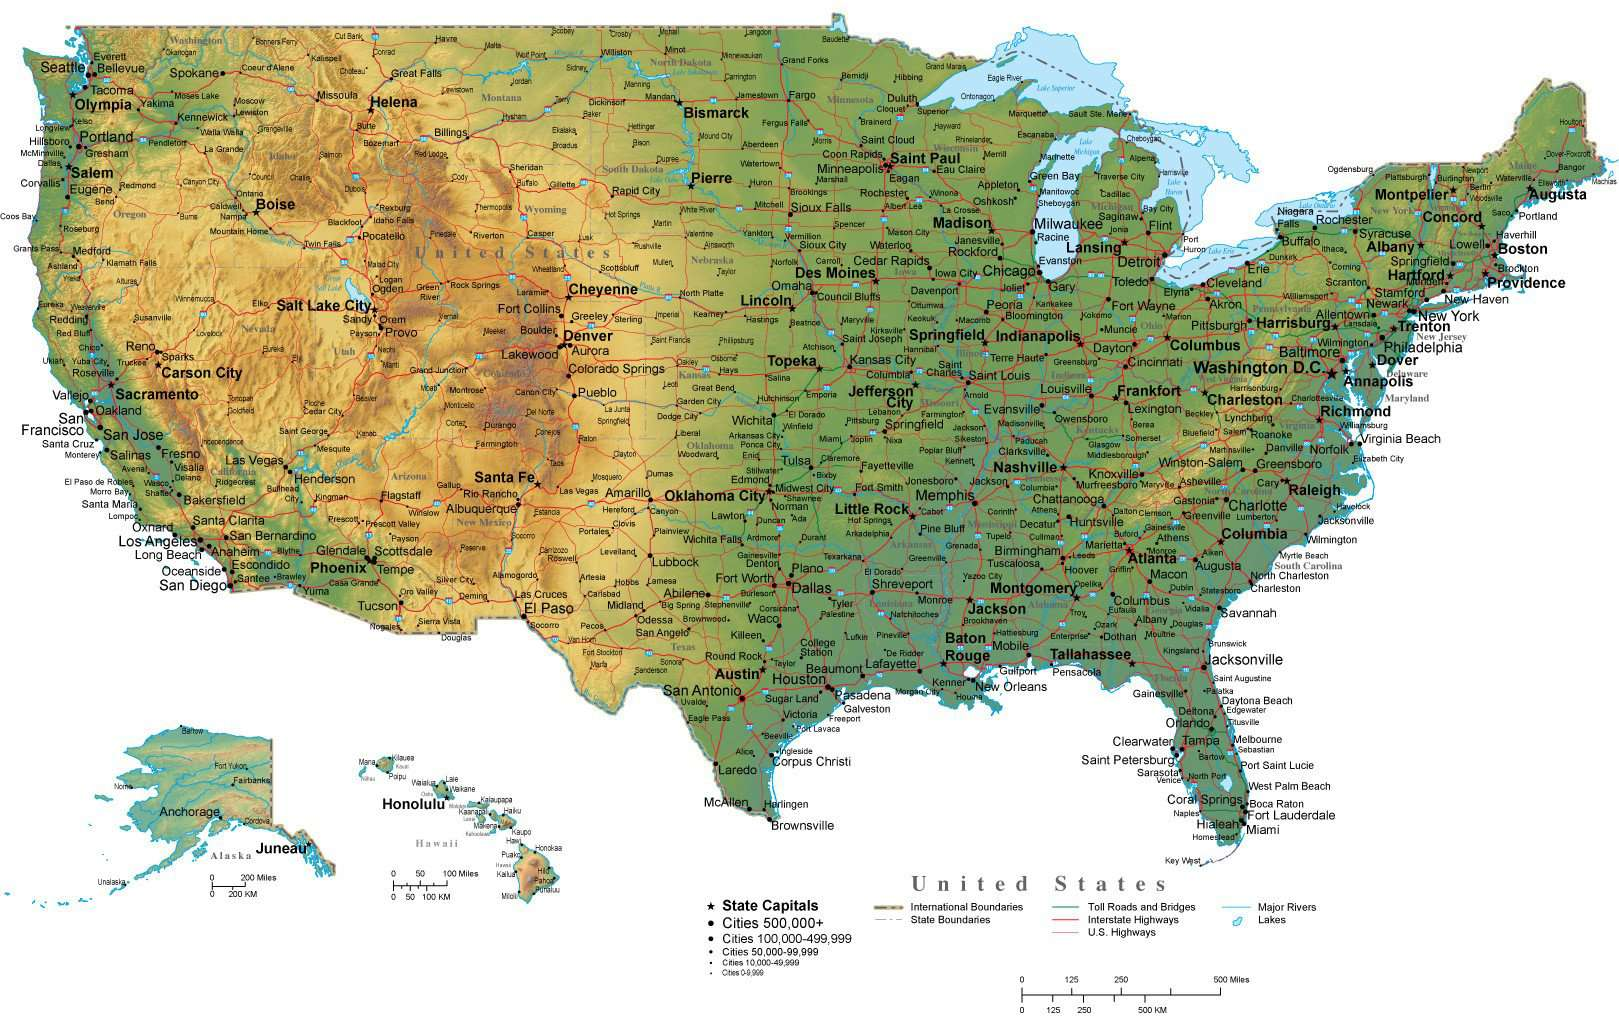 Terrain Map Of Usa Digital USA Terrain map in Adobe Illustrator vector format with